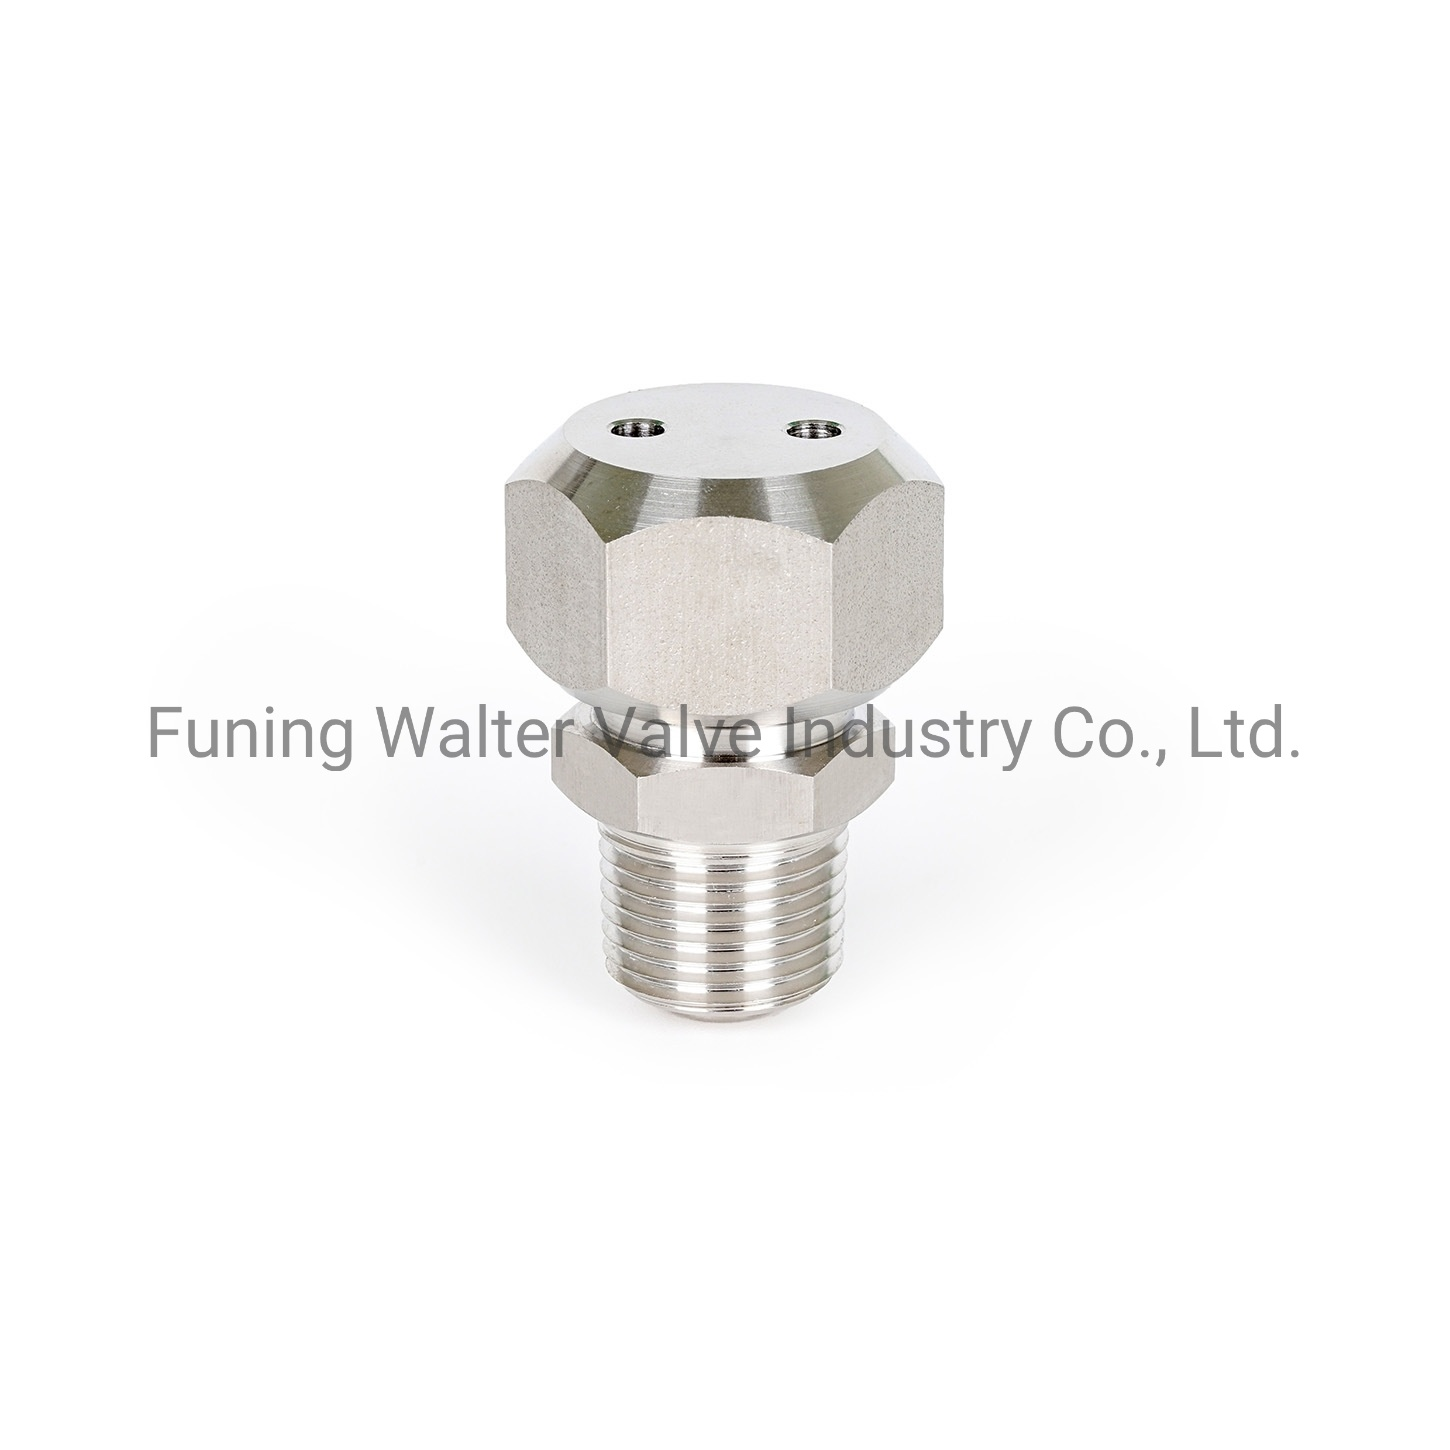 China America Double Seal Stainless Valve Grease Vent Cup China Valve Grease Valve Fitting